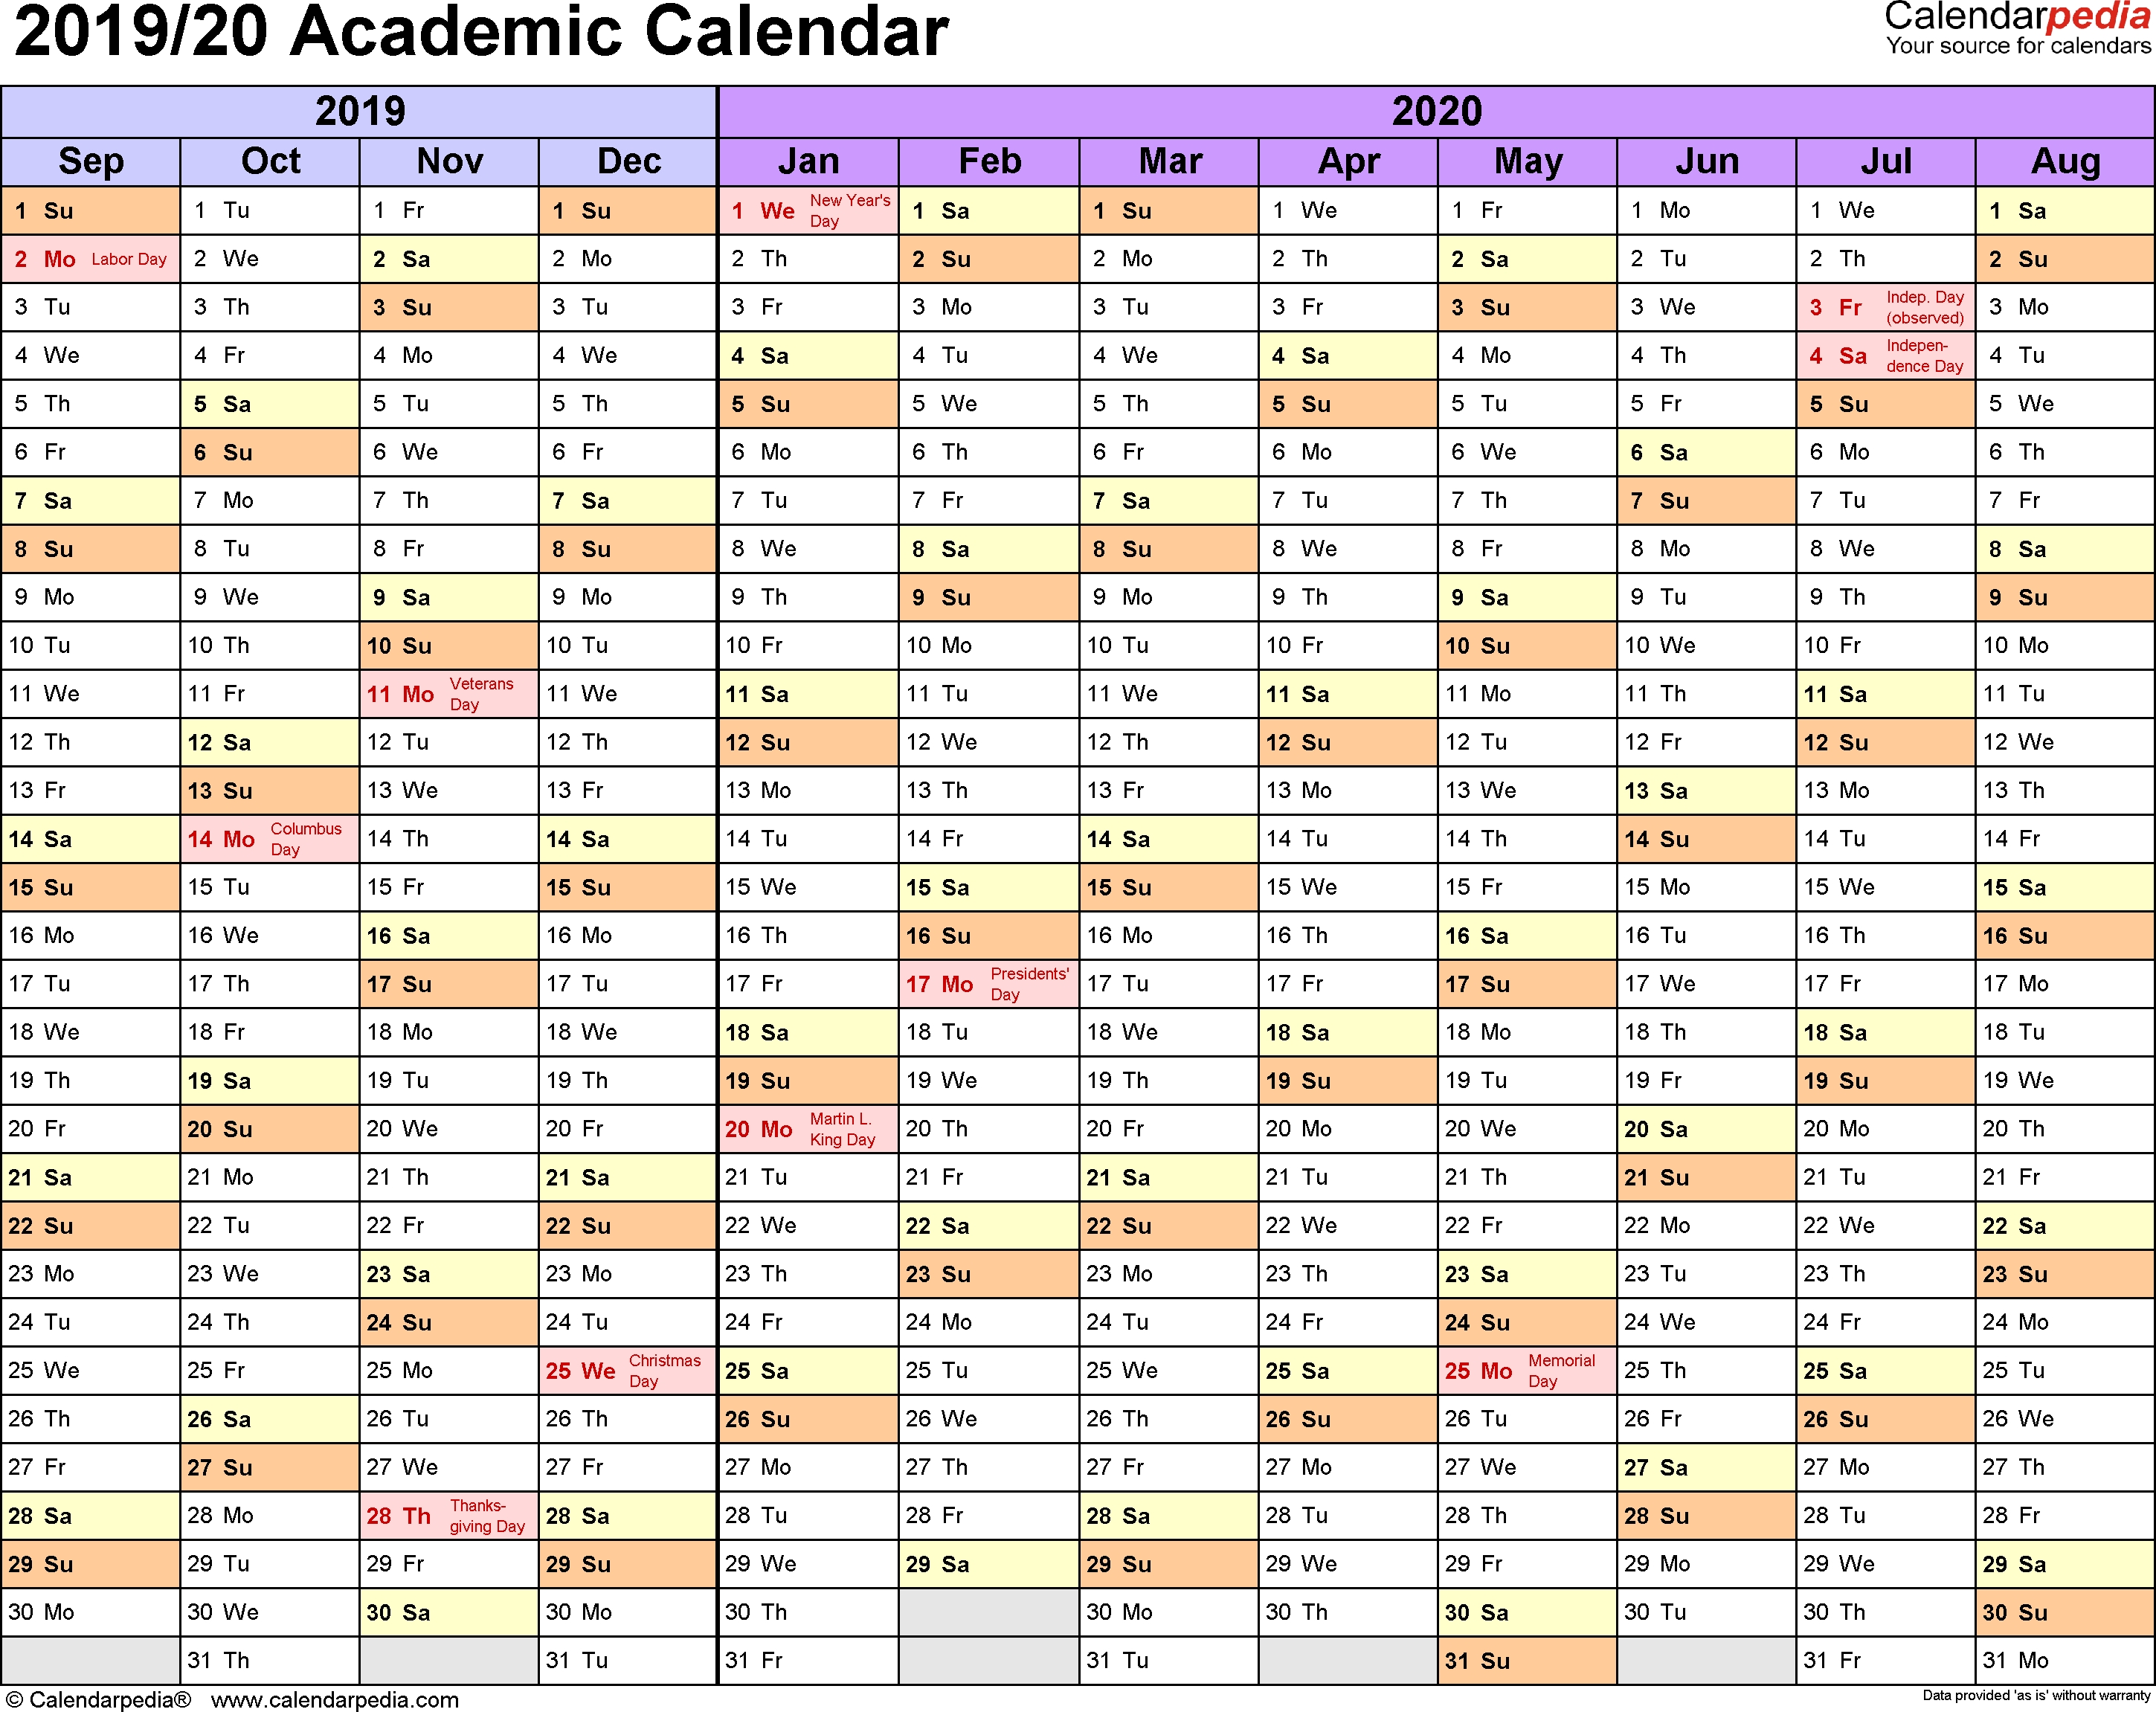 Academic Calendars 2019/2020 - Free Printable Excel Templates with Year At A Glance 2019-2020 School Calendar